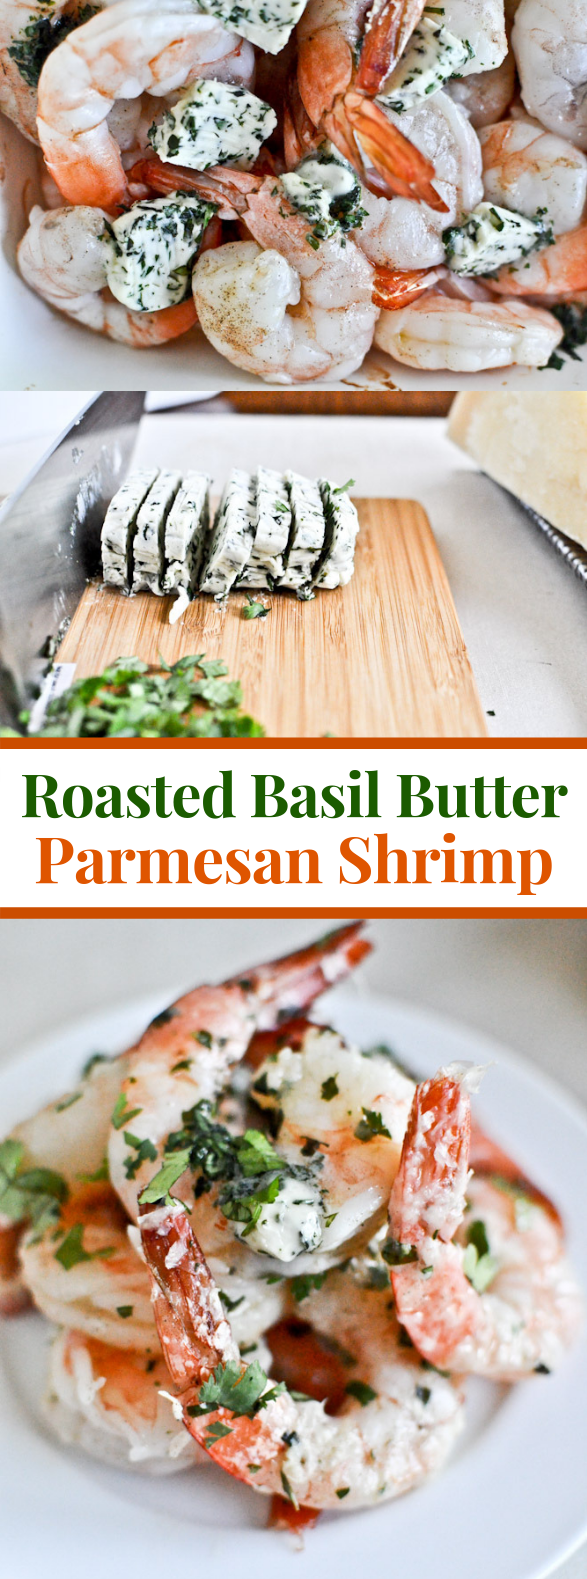 ROASTED BASIL BUTTER PARMESAN SHRIMP #dinner #pasta